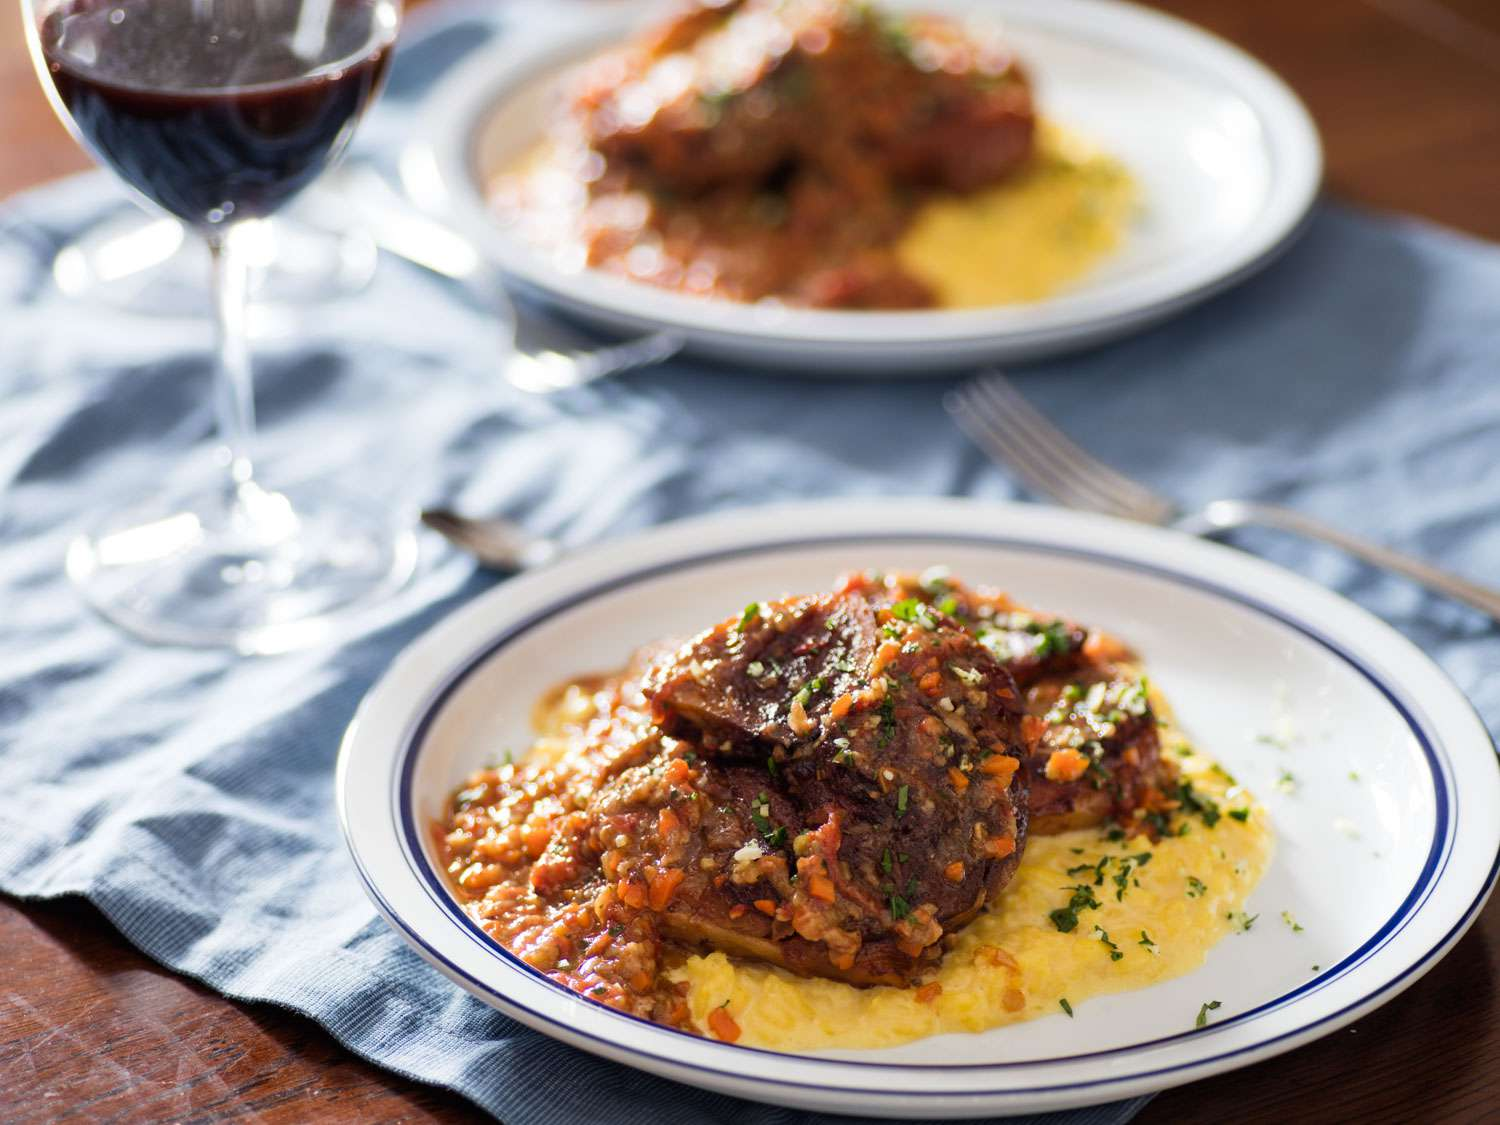 Plate of osso buco on top of risotto alla milanese with second serving and glass of wine in the background.